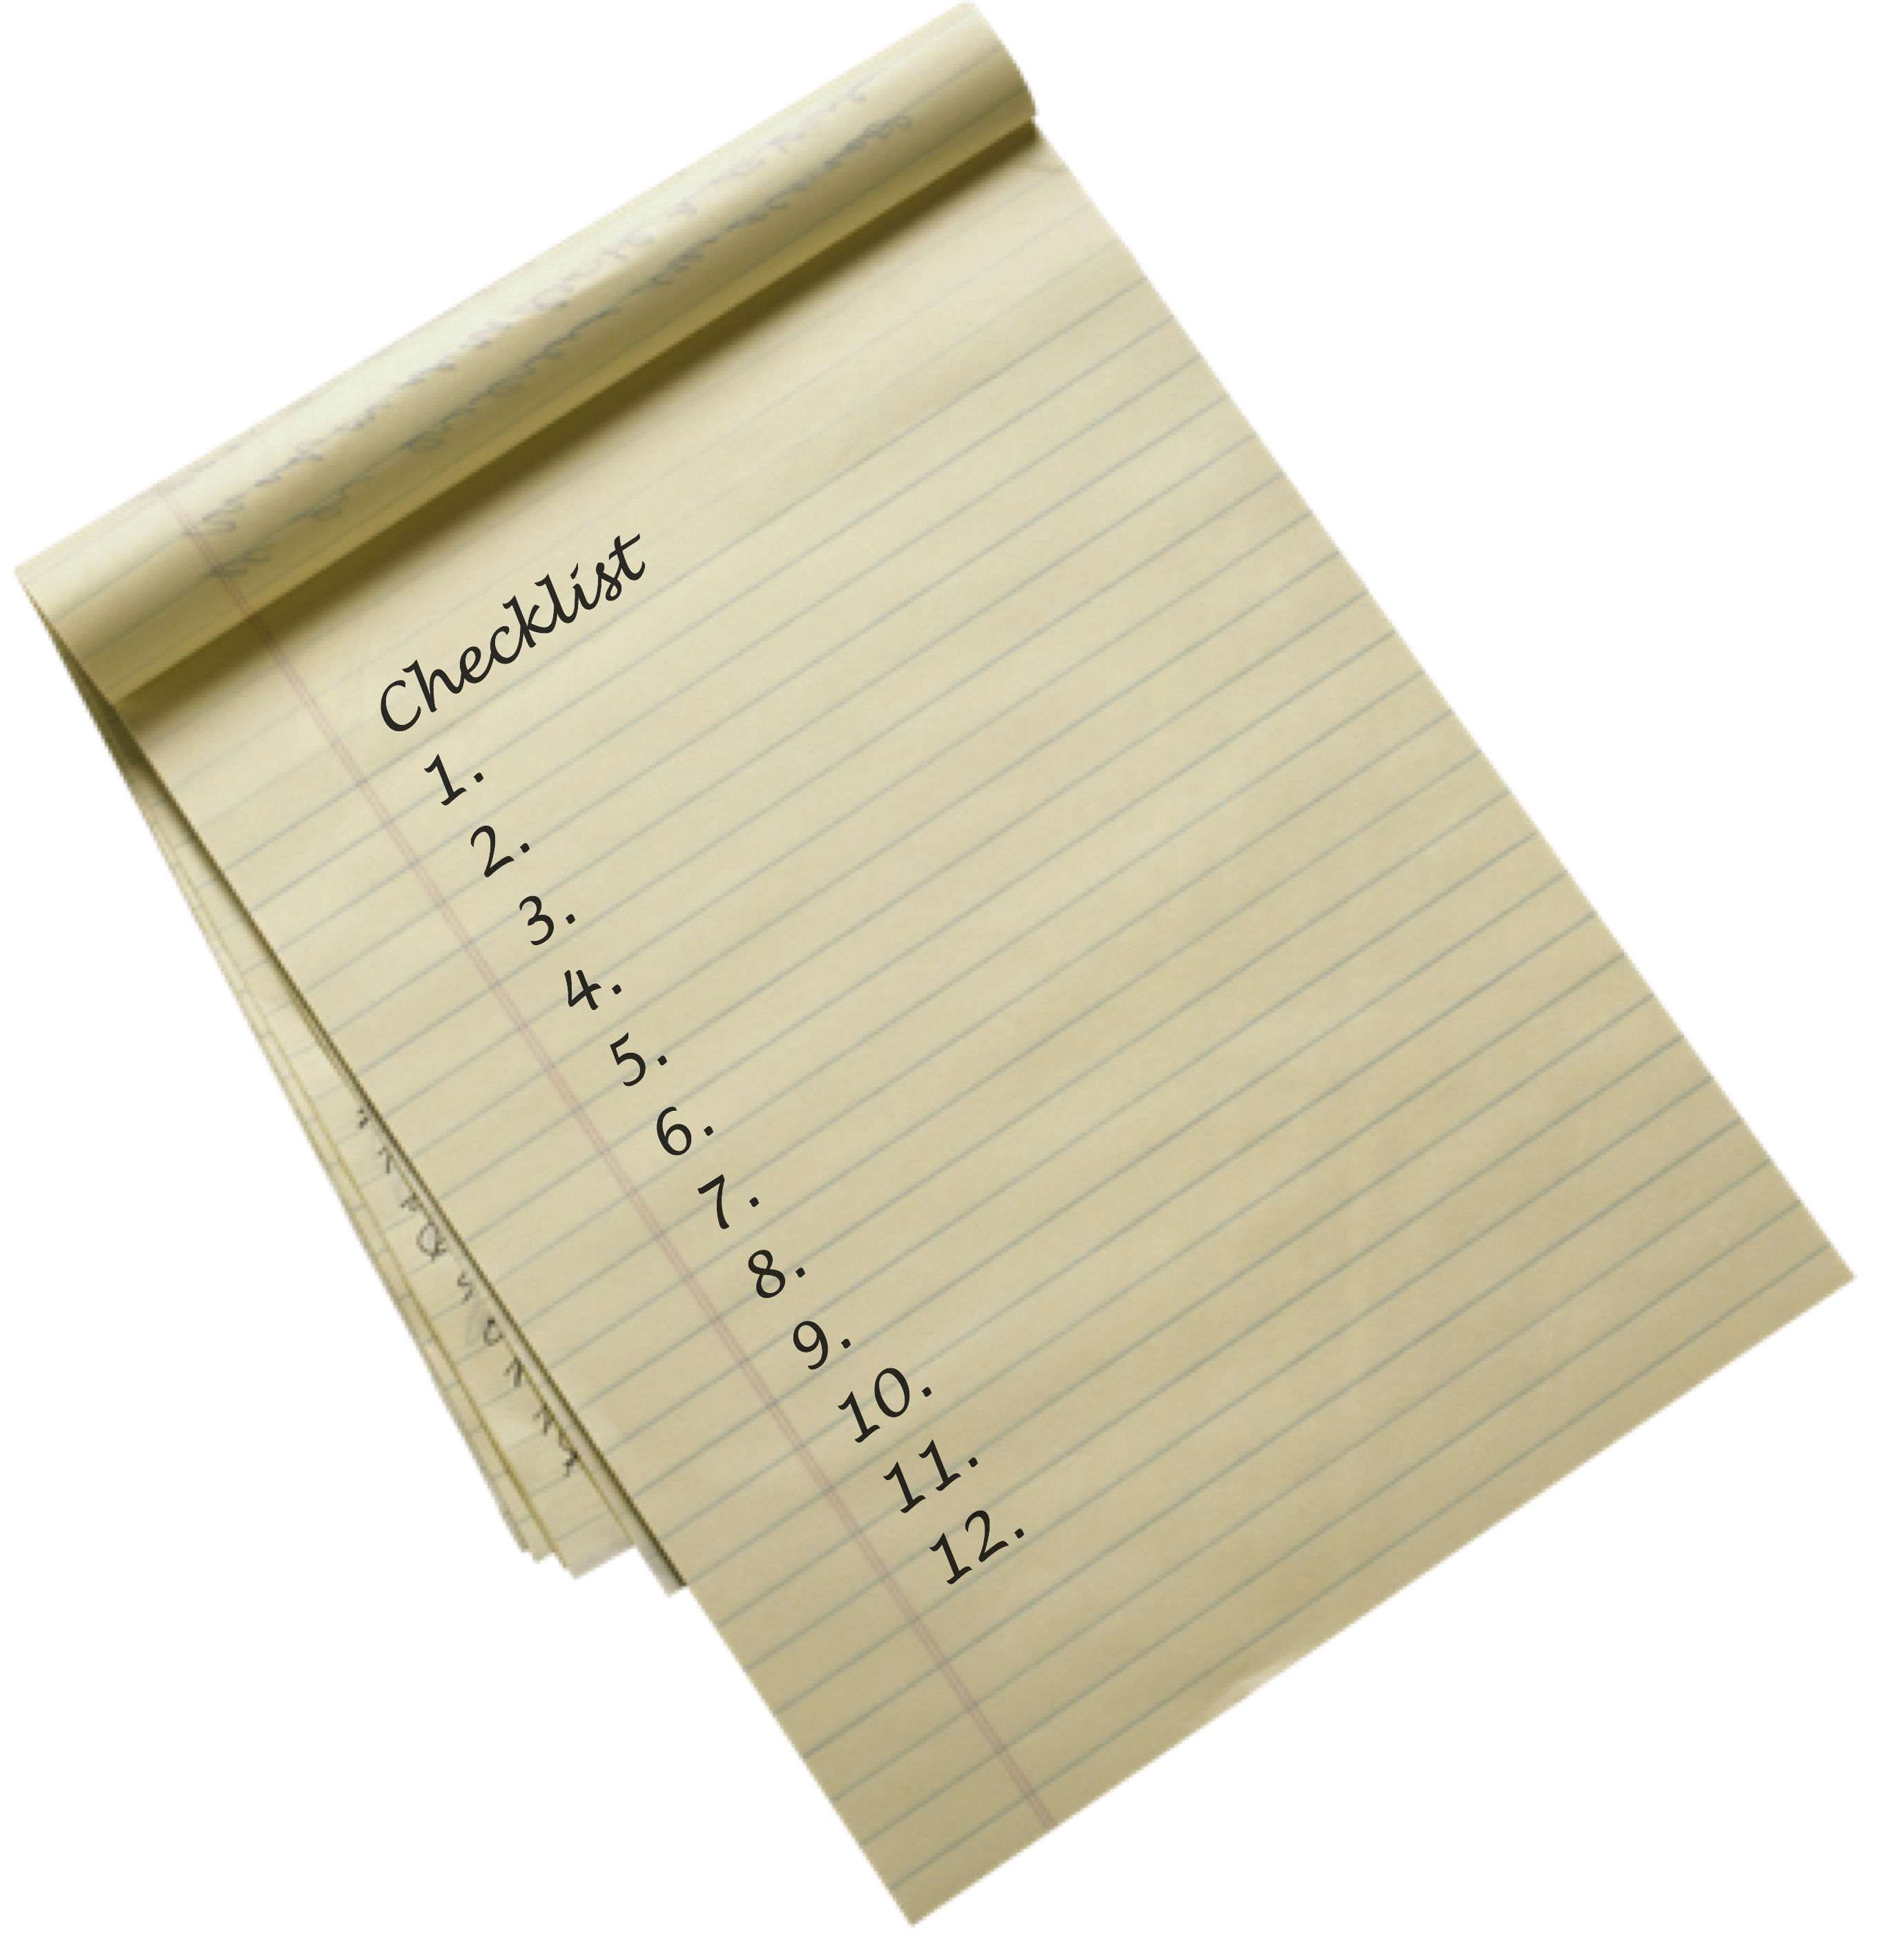 The Self-Publishing Checklist